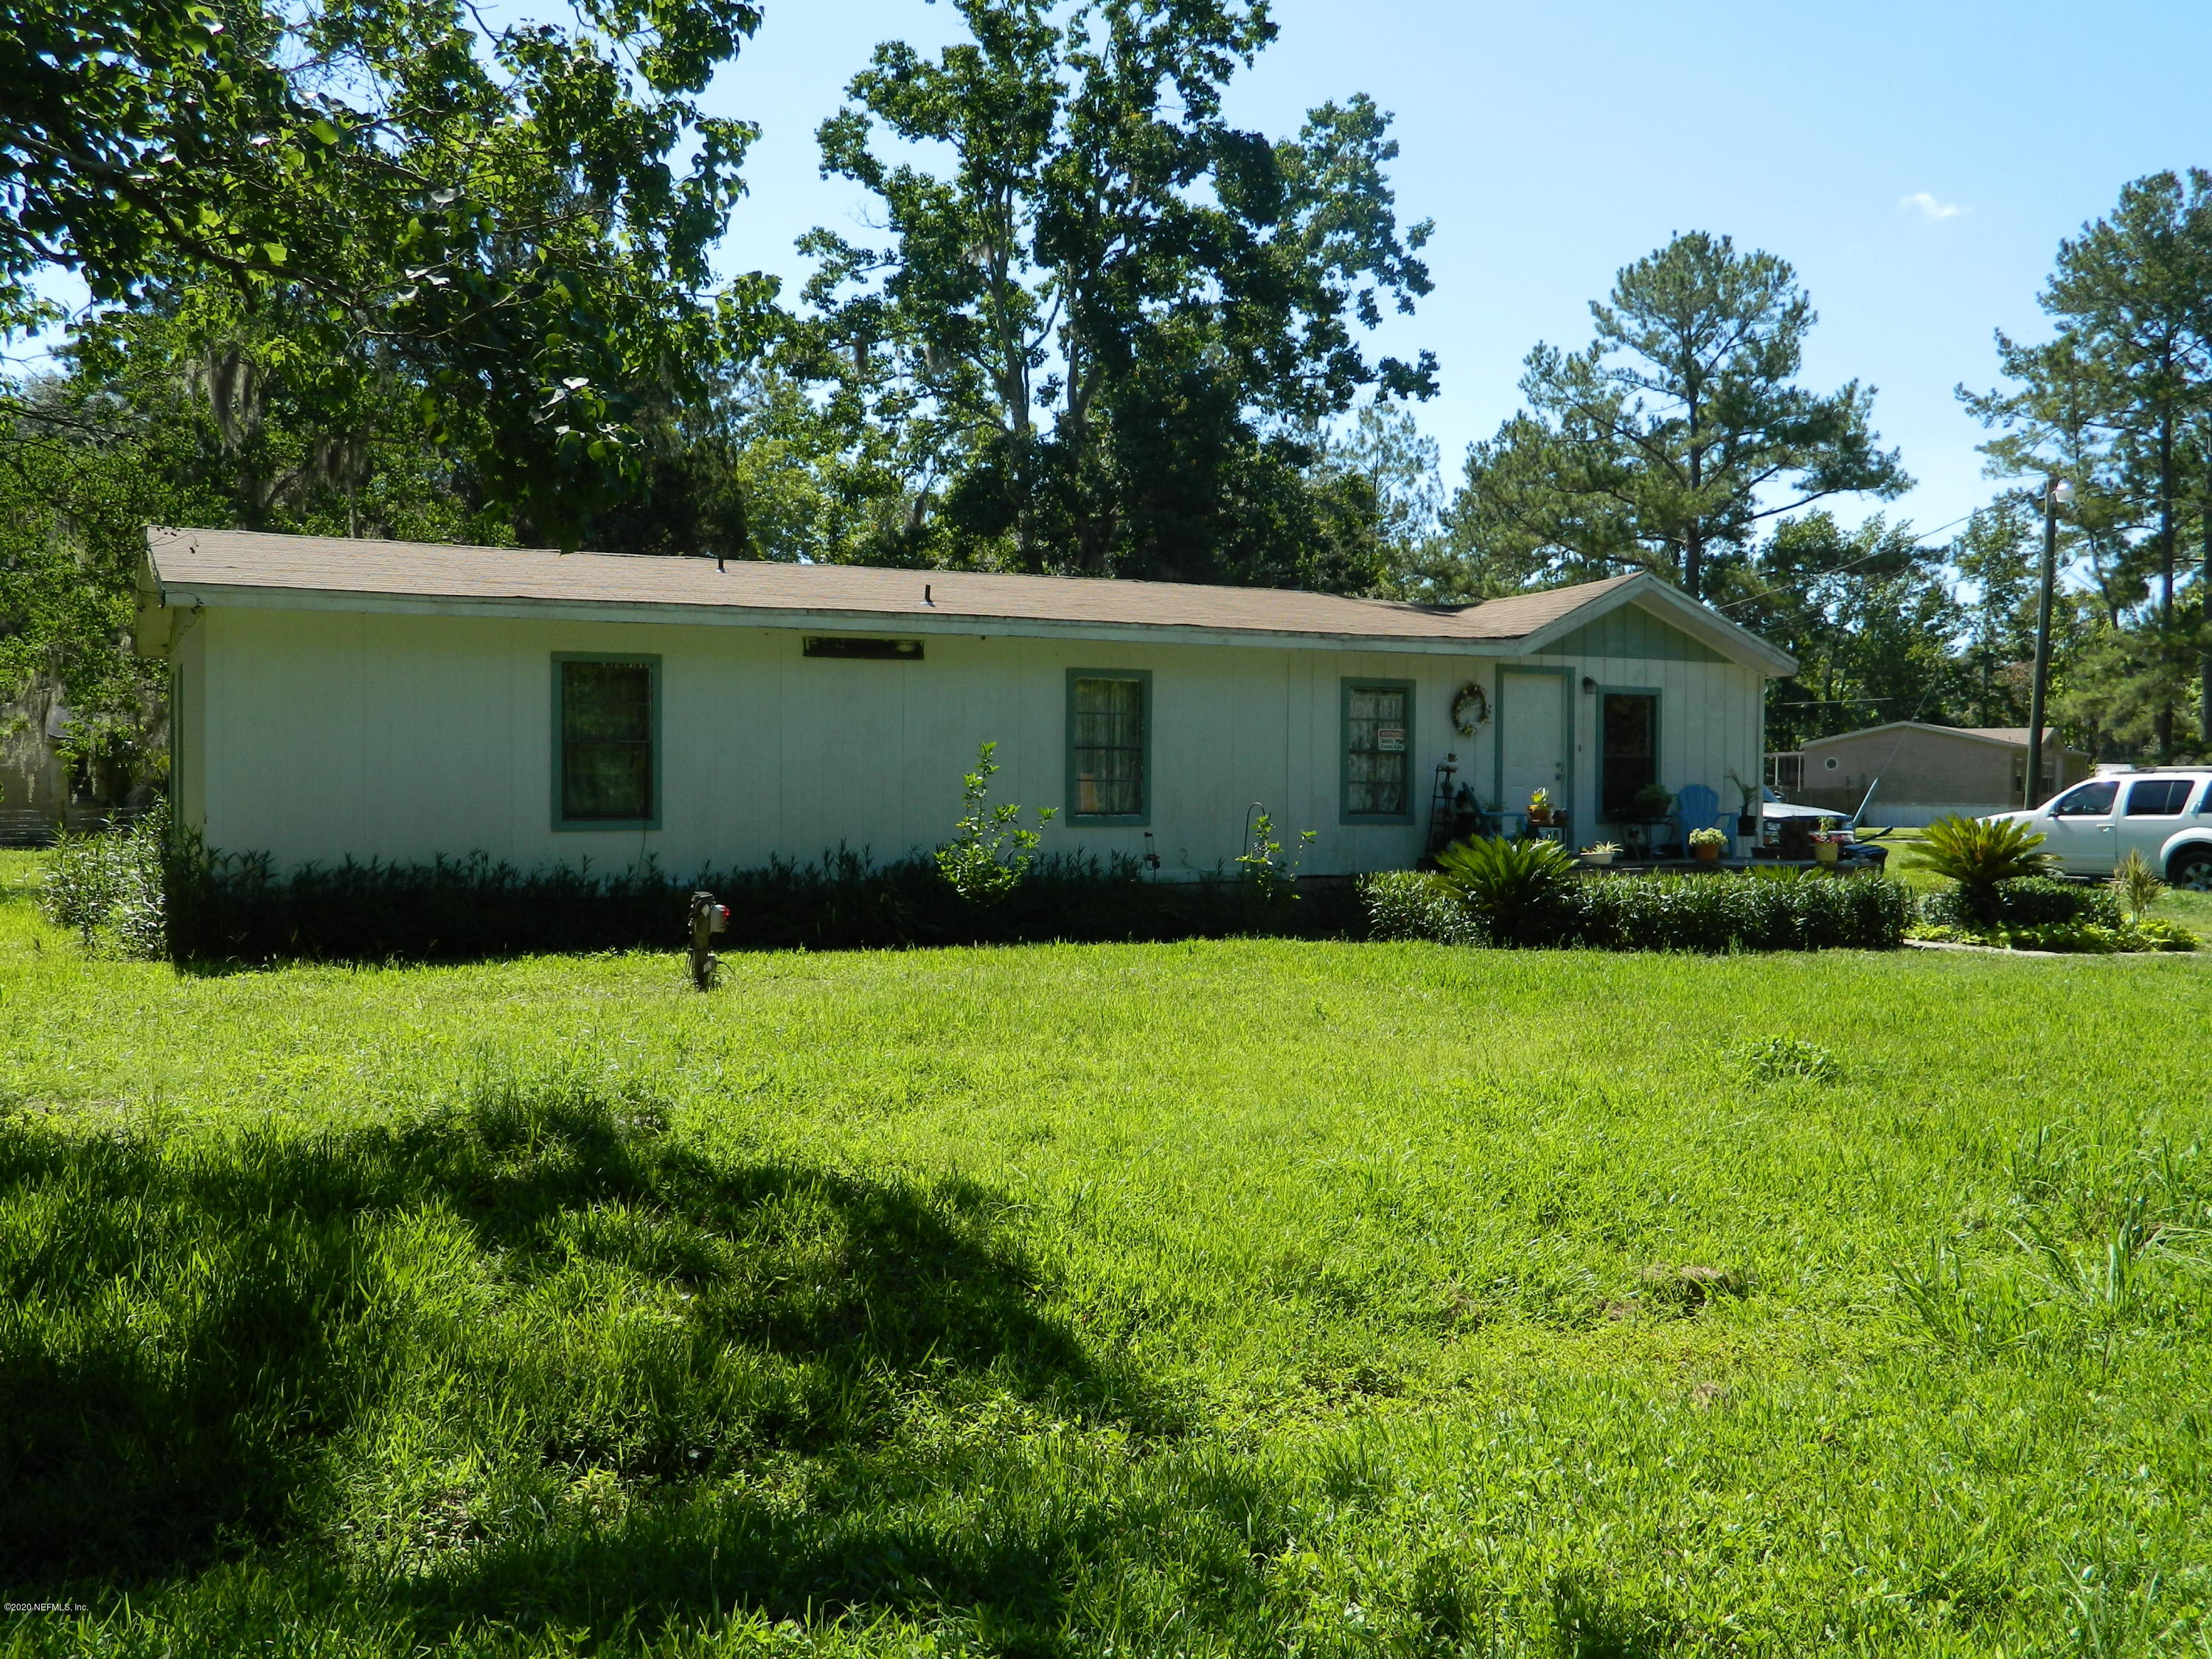 140 ISLANDER, SATSUMA, FLORIDA 32189, 3 Bedrooms Bedrooms, ,2 BathroomsBathrooms,Residential,For sale,ISLANDER,1059838